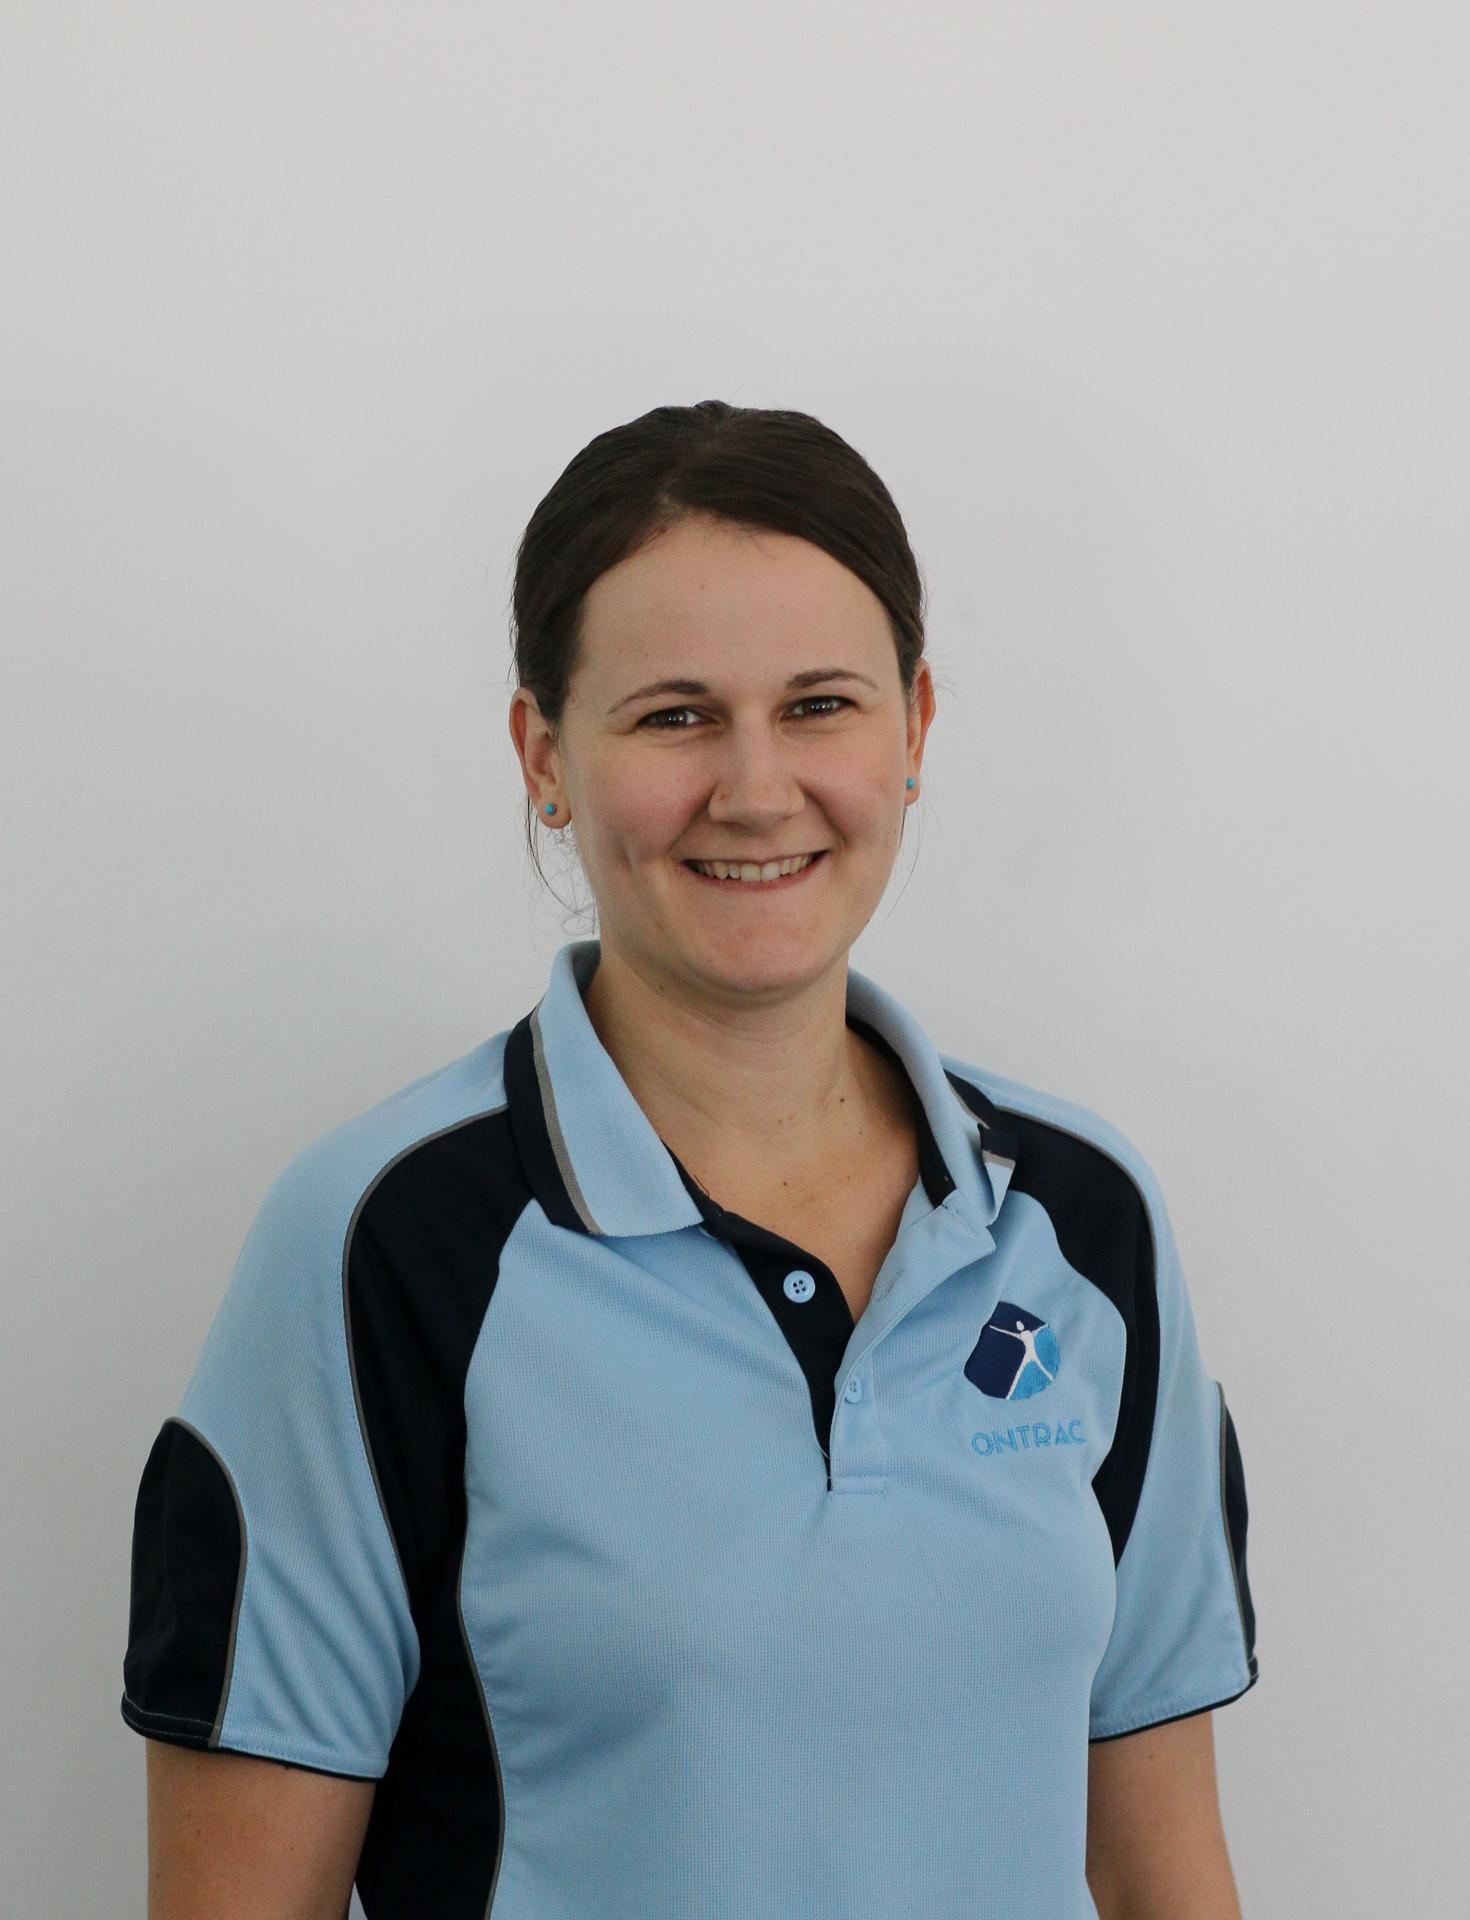 Sheree Connolly - Accredited Exercise Physiologist - Bowral Clinic (On Maternity Leave)